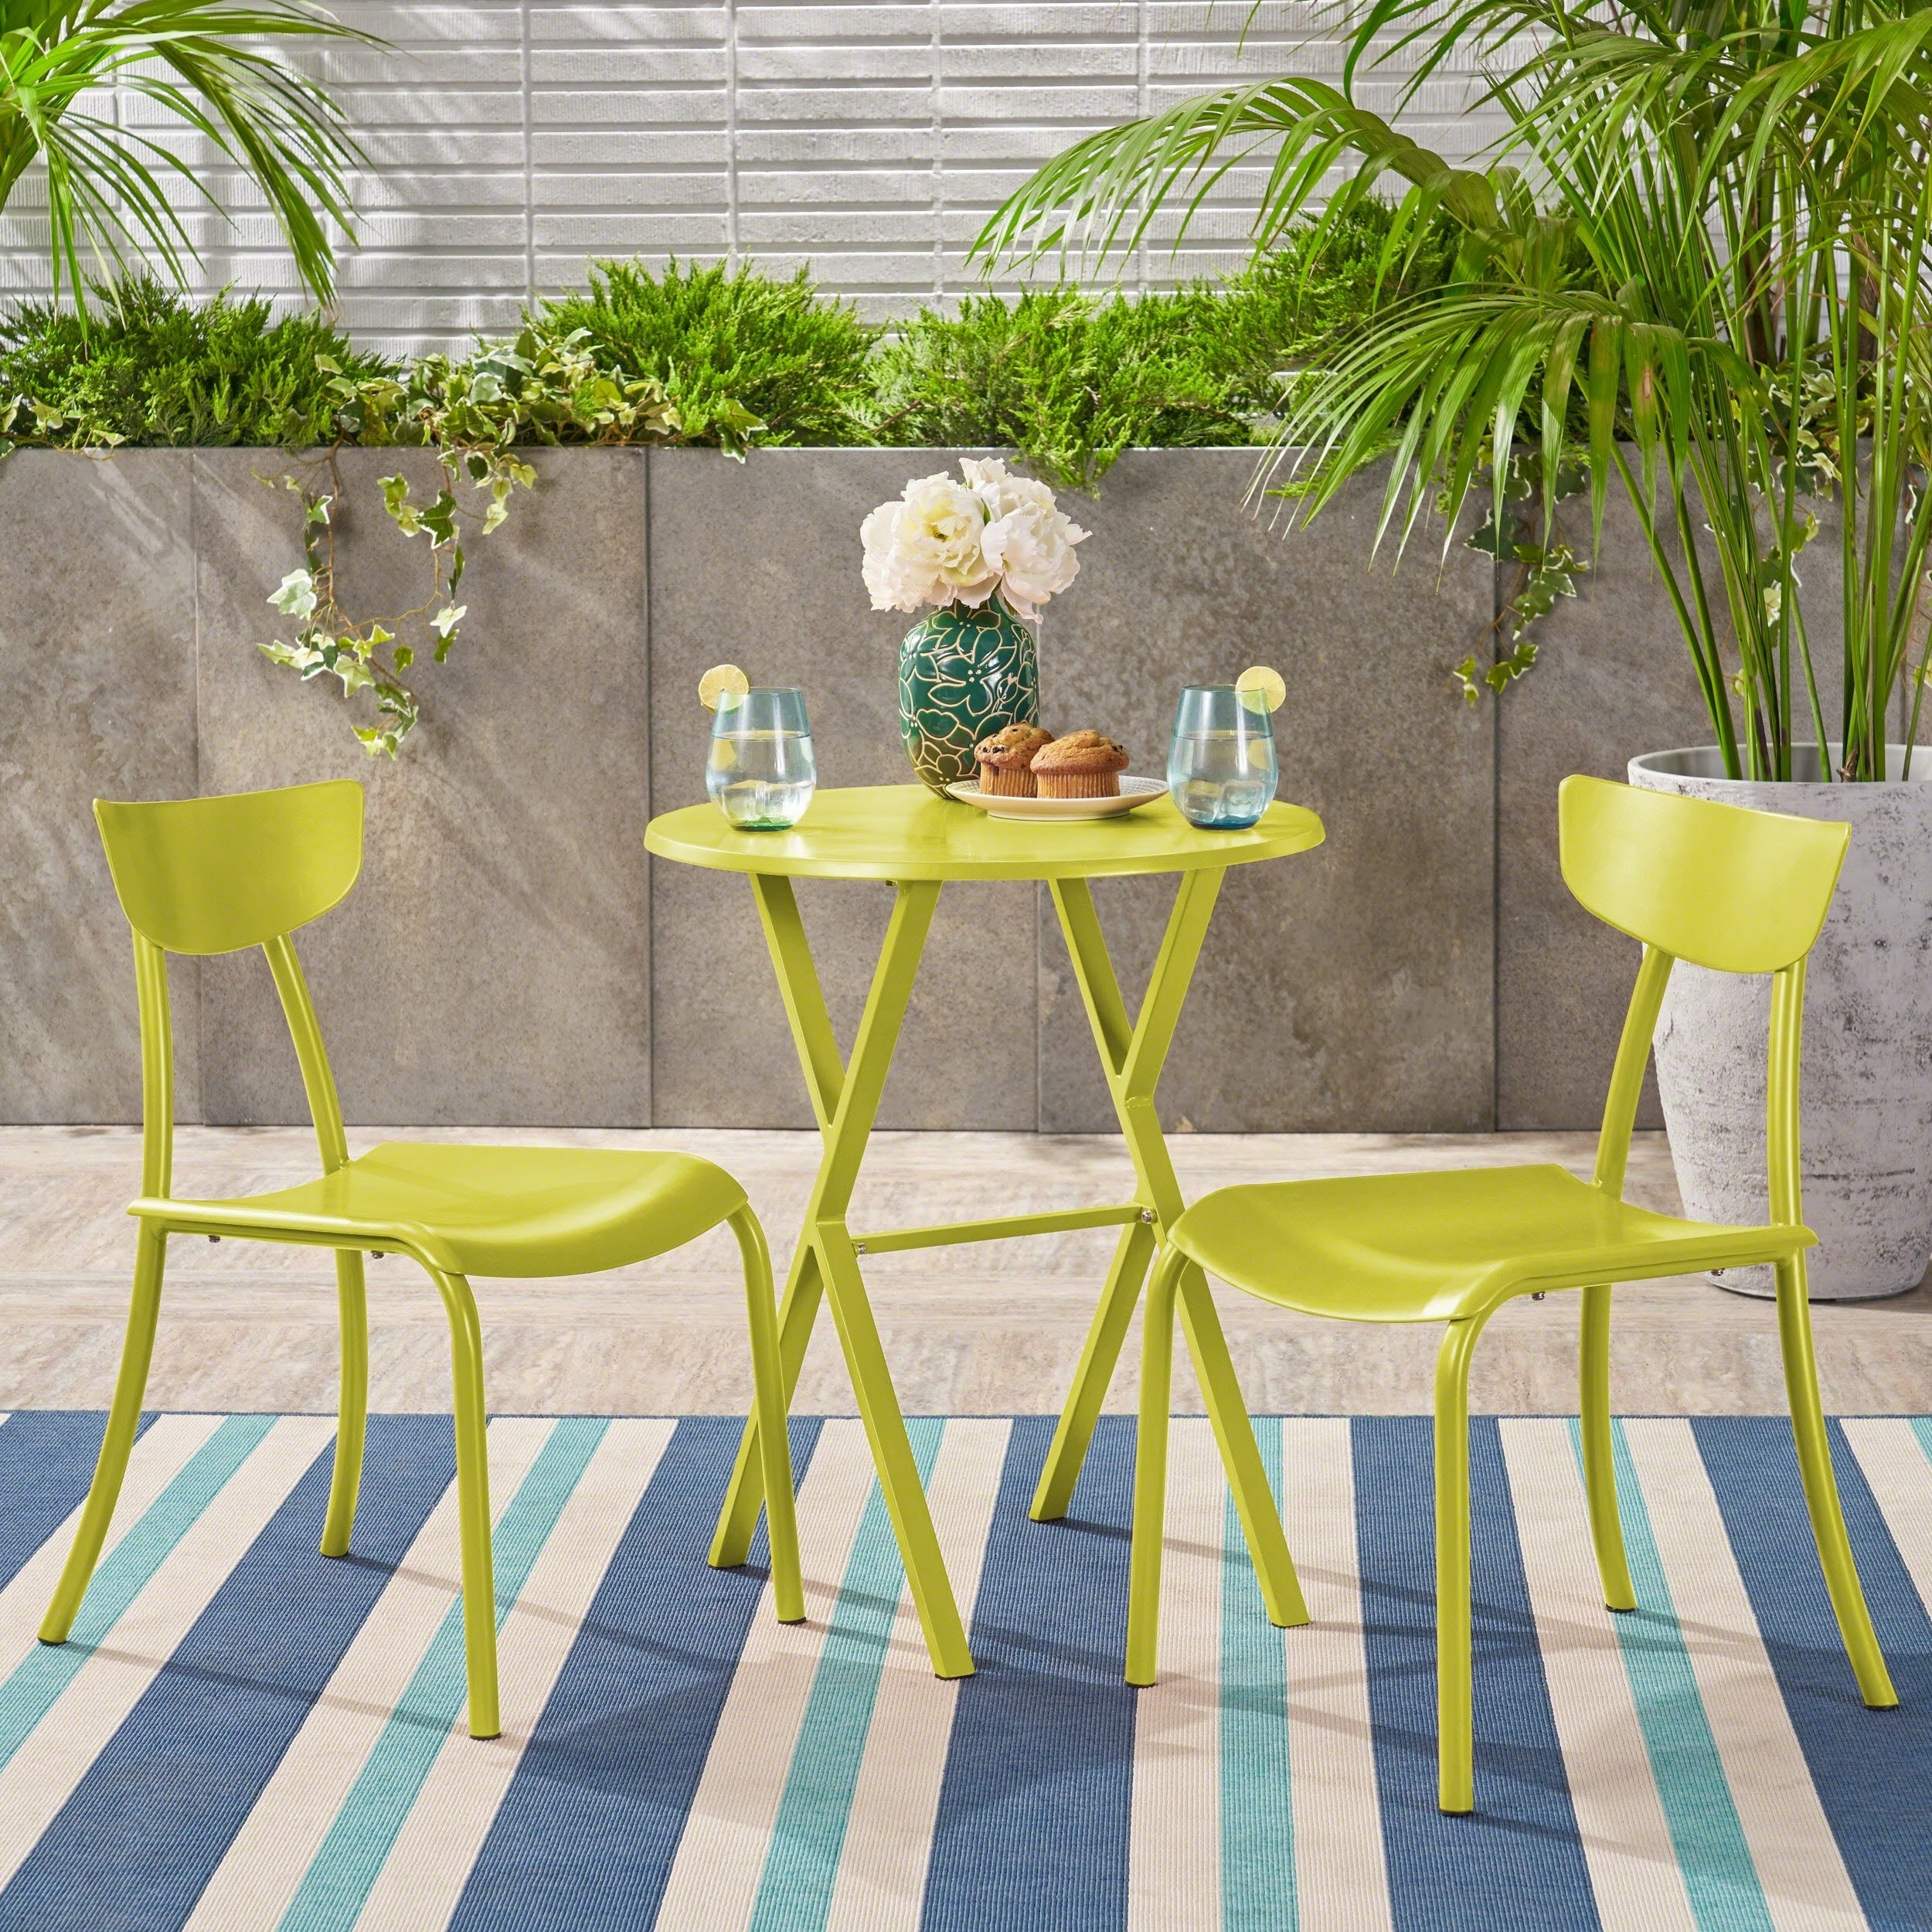 9a5e1fa1c793 Buy Outdoor Bistro Sets Online at Overstock